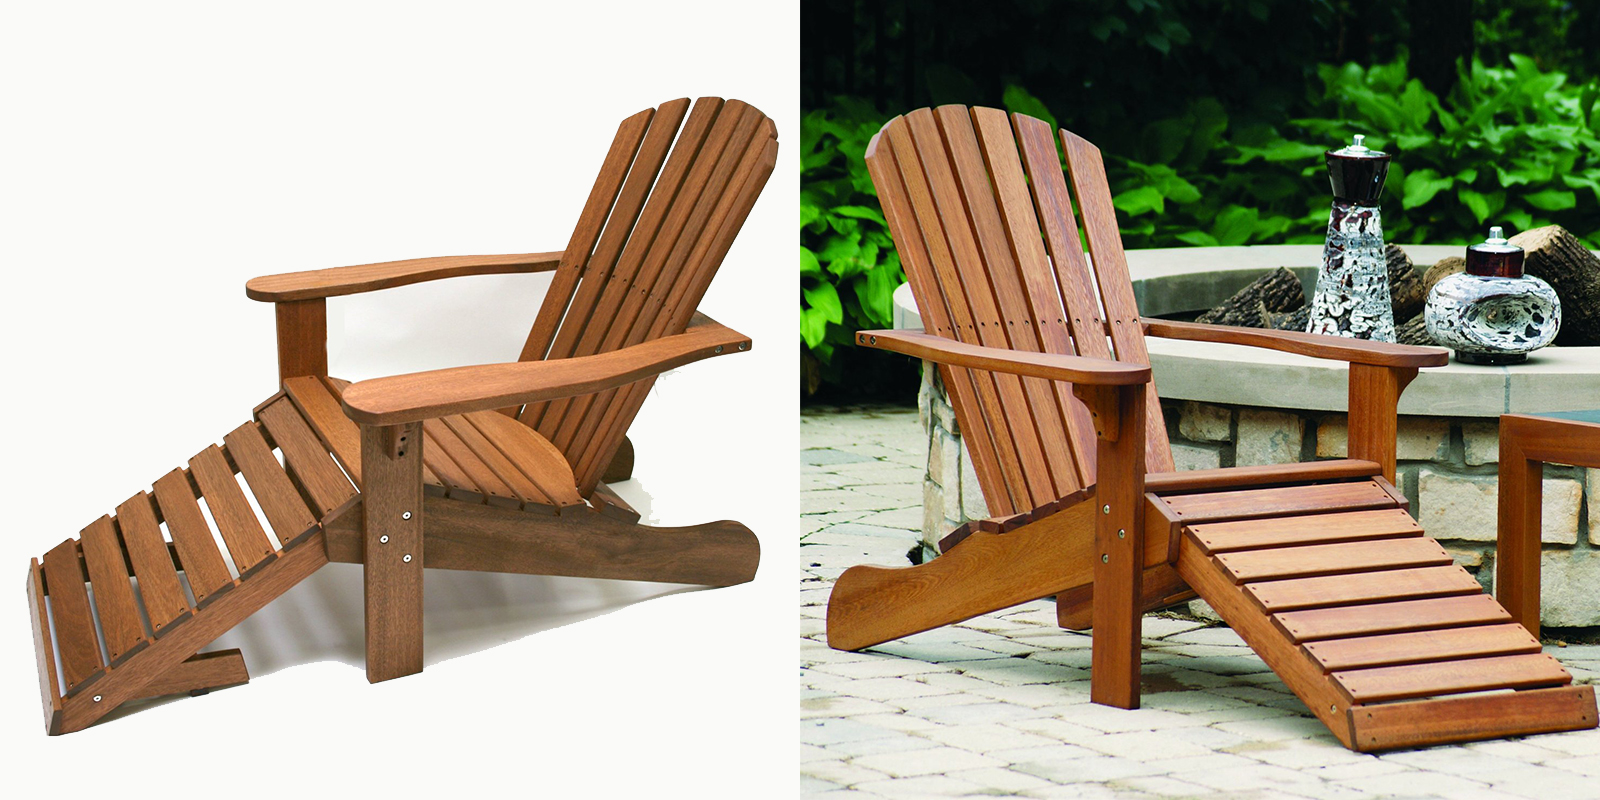 Patio Chair - Eucalyptus Adirondack Chair